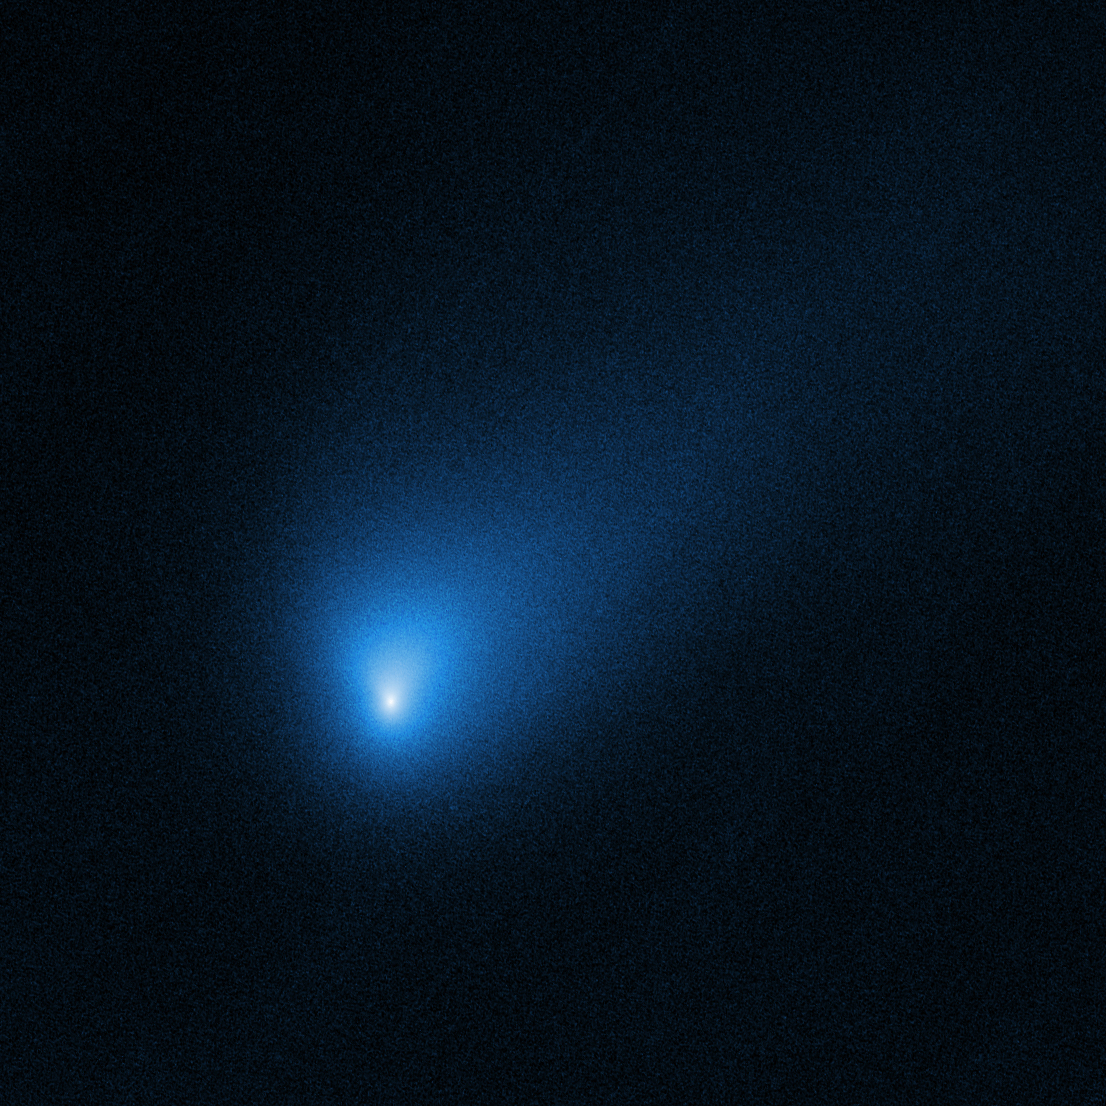 Hubble Telescope zooms in on interstellar visitor: Comet 2I/Borisov